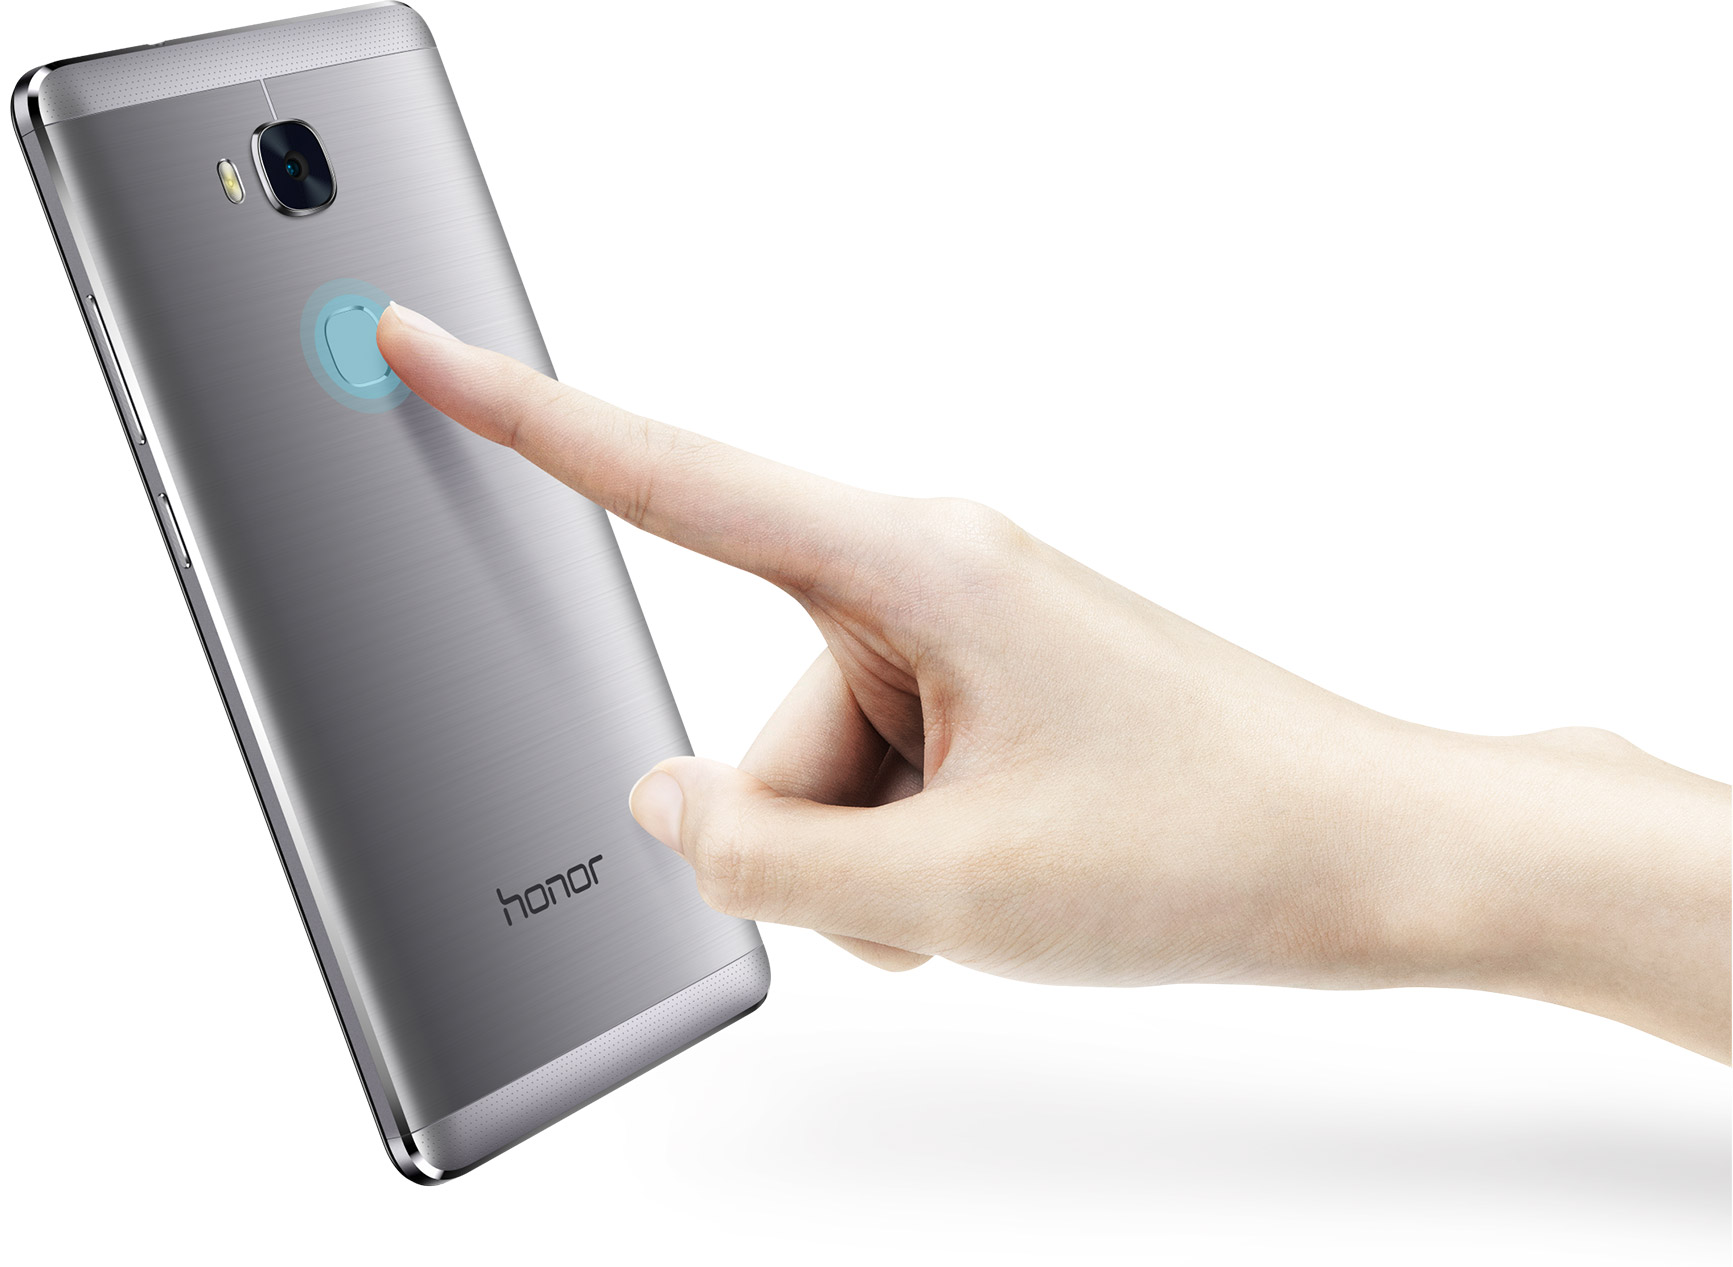 Honor 5X US Fingerprint reader